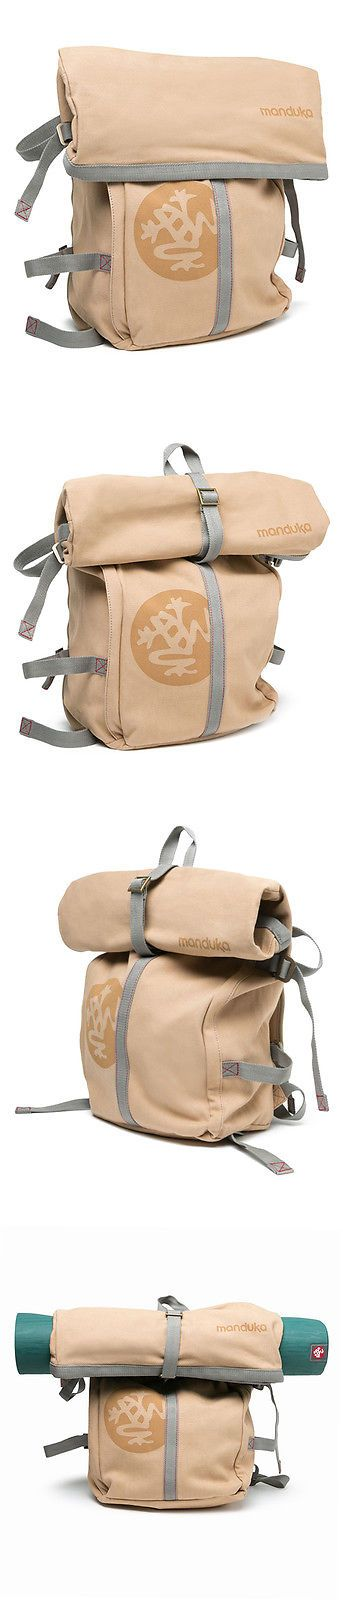 Sweatbands 179811: Manduka The Rugged Roll Top Yoga Backpack BUY IT NOW ONLY: $120.0